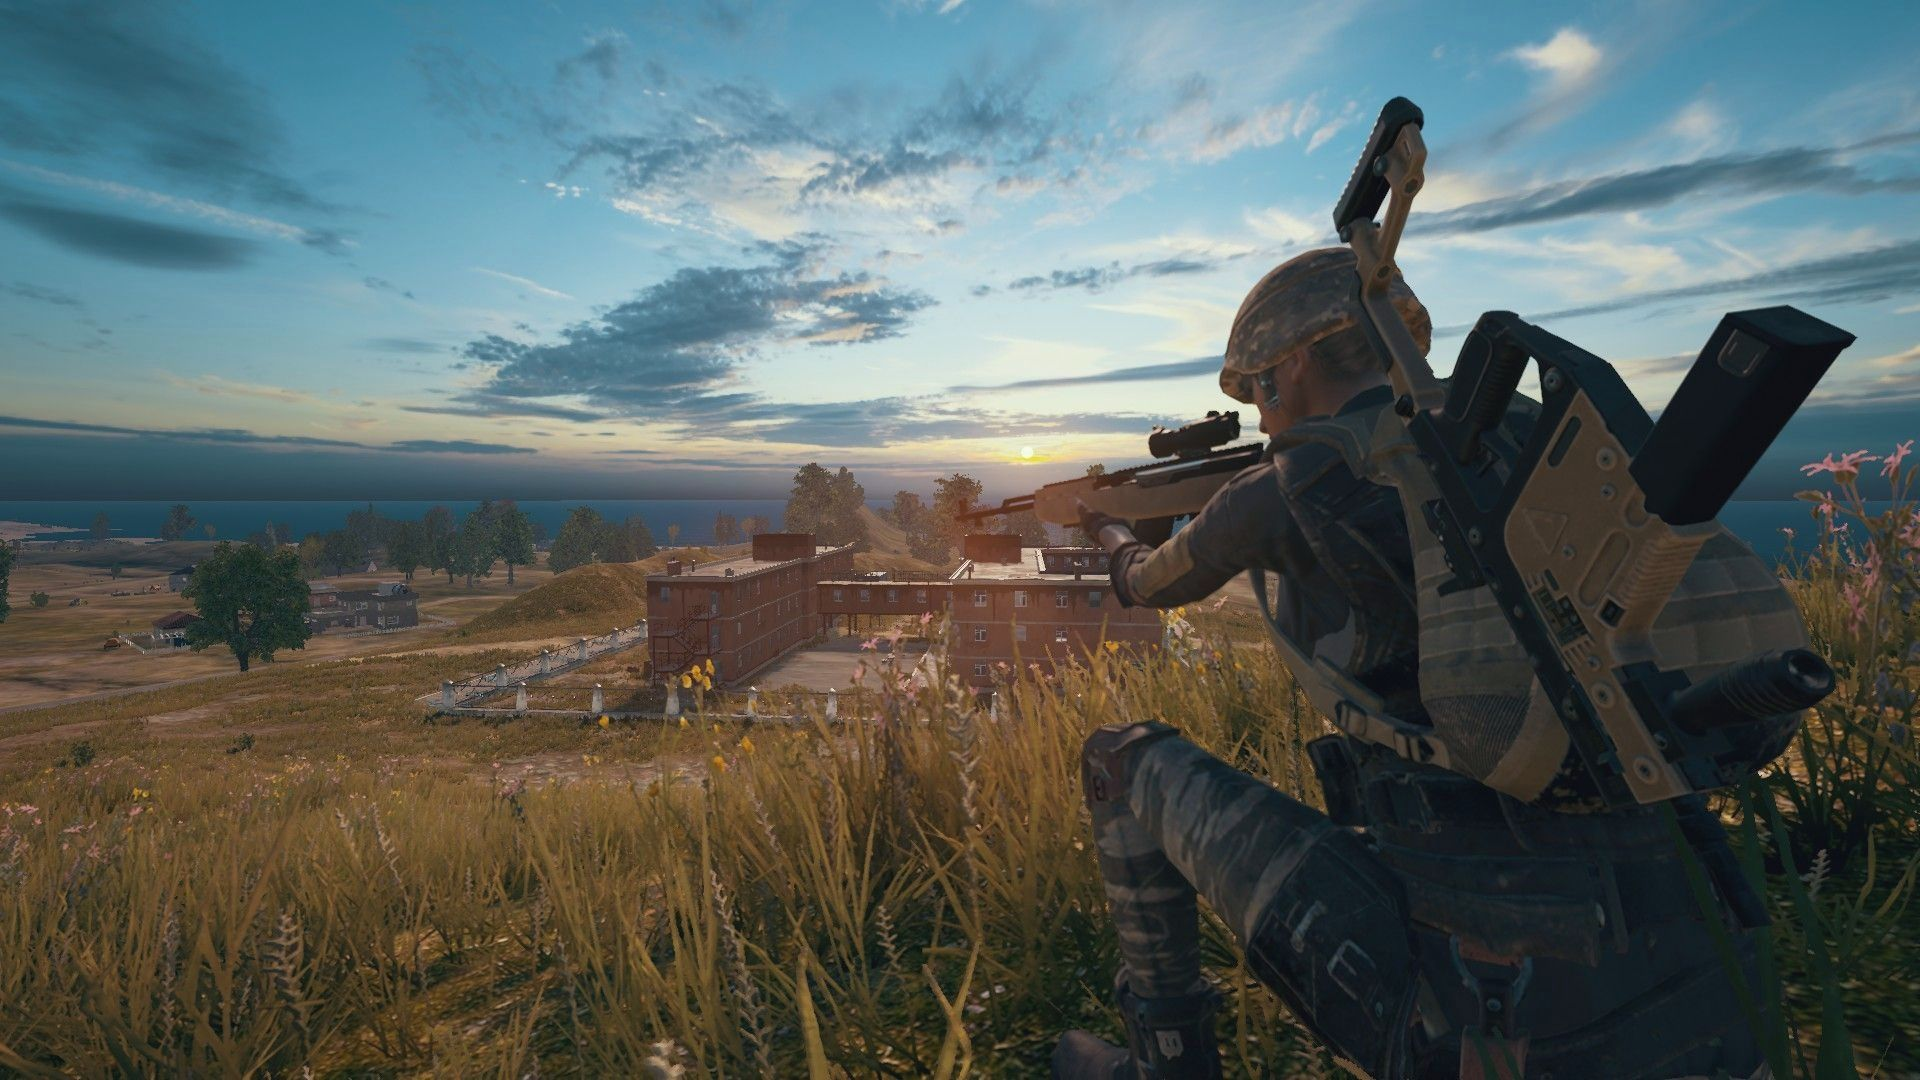 Pubg 4k Ultra Hd Wallpapers For Pc And Mobile Pubg 1080p Gambar